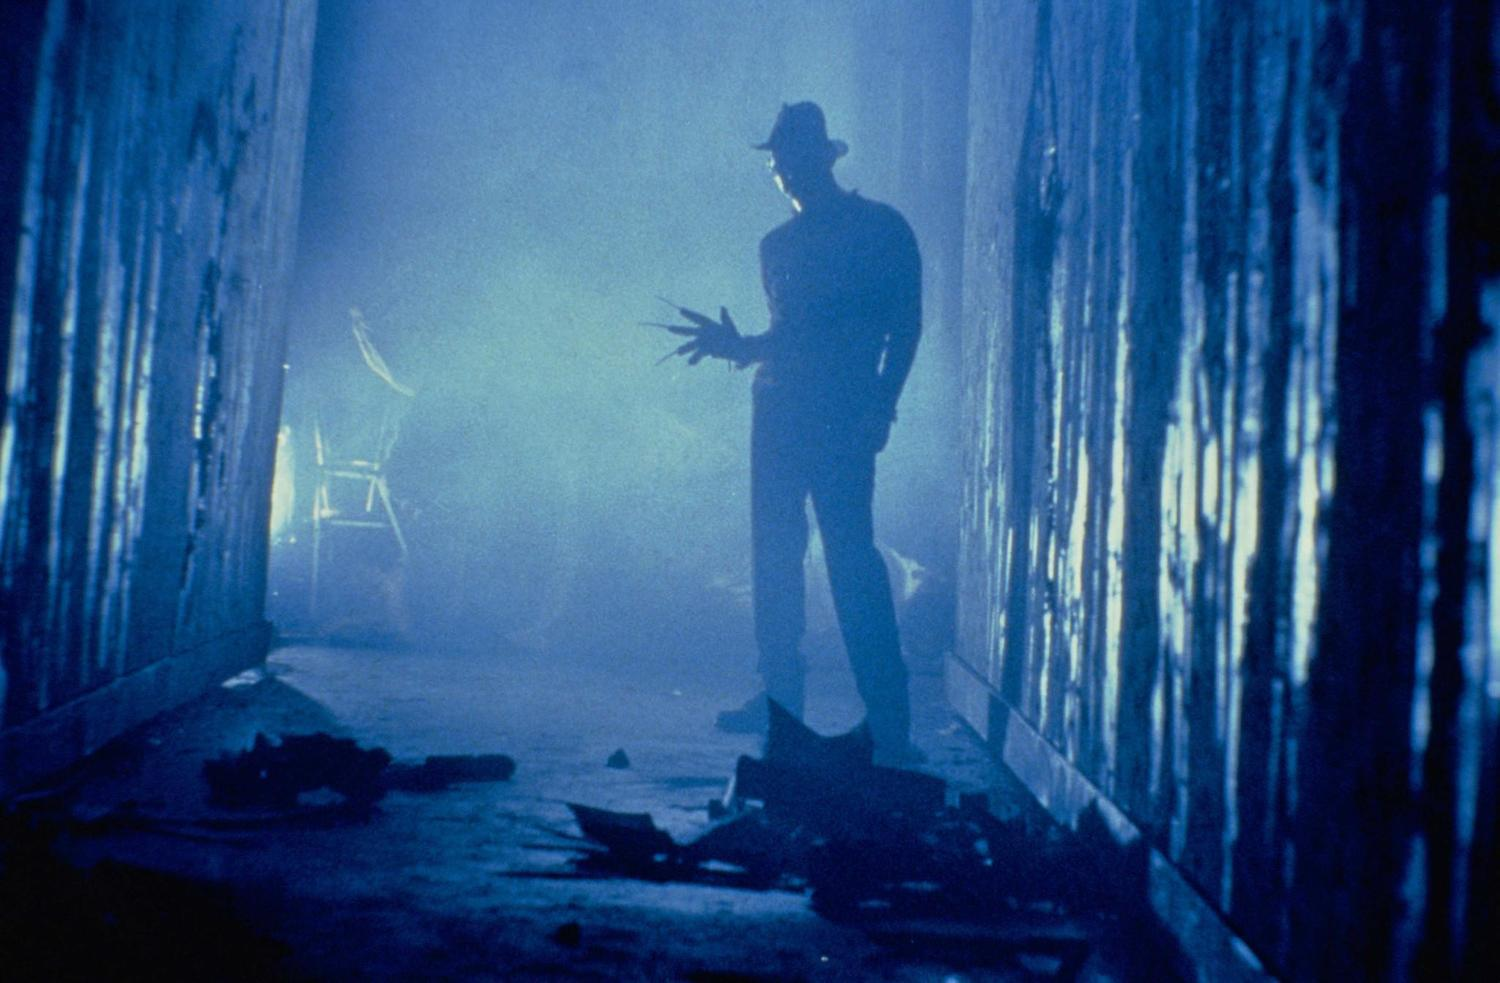 15. A Nightmare on Elm Street